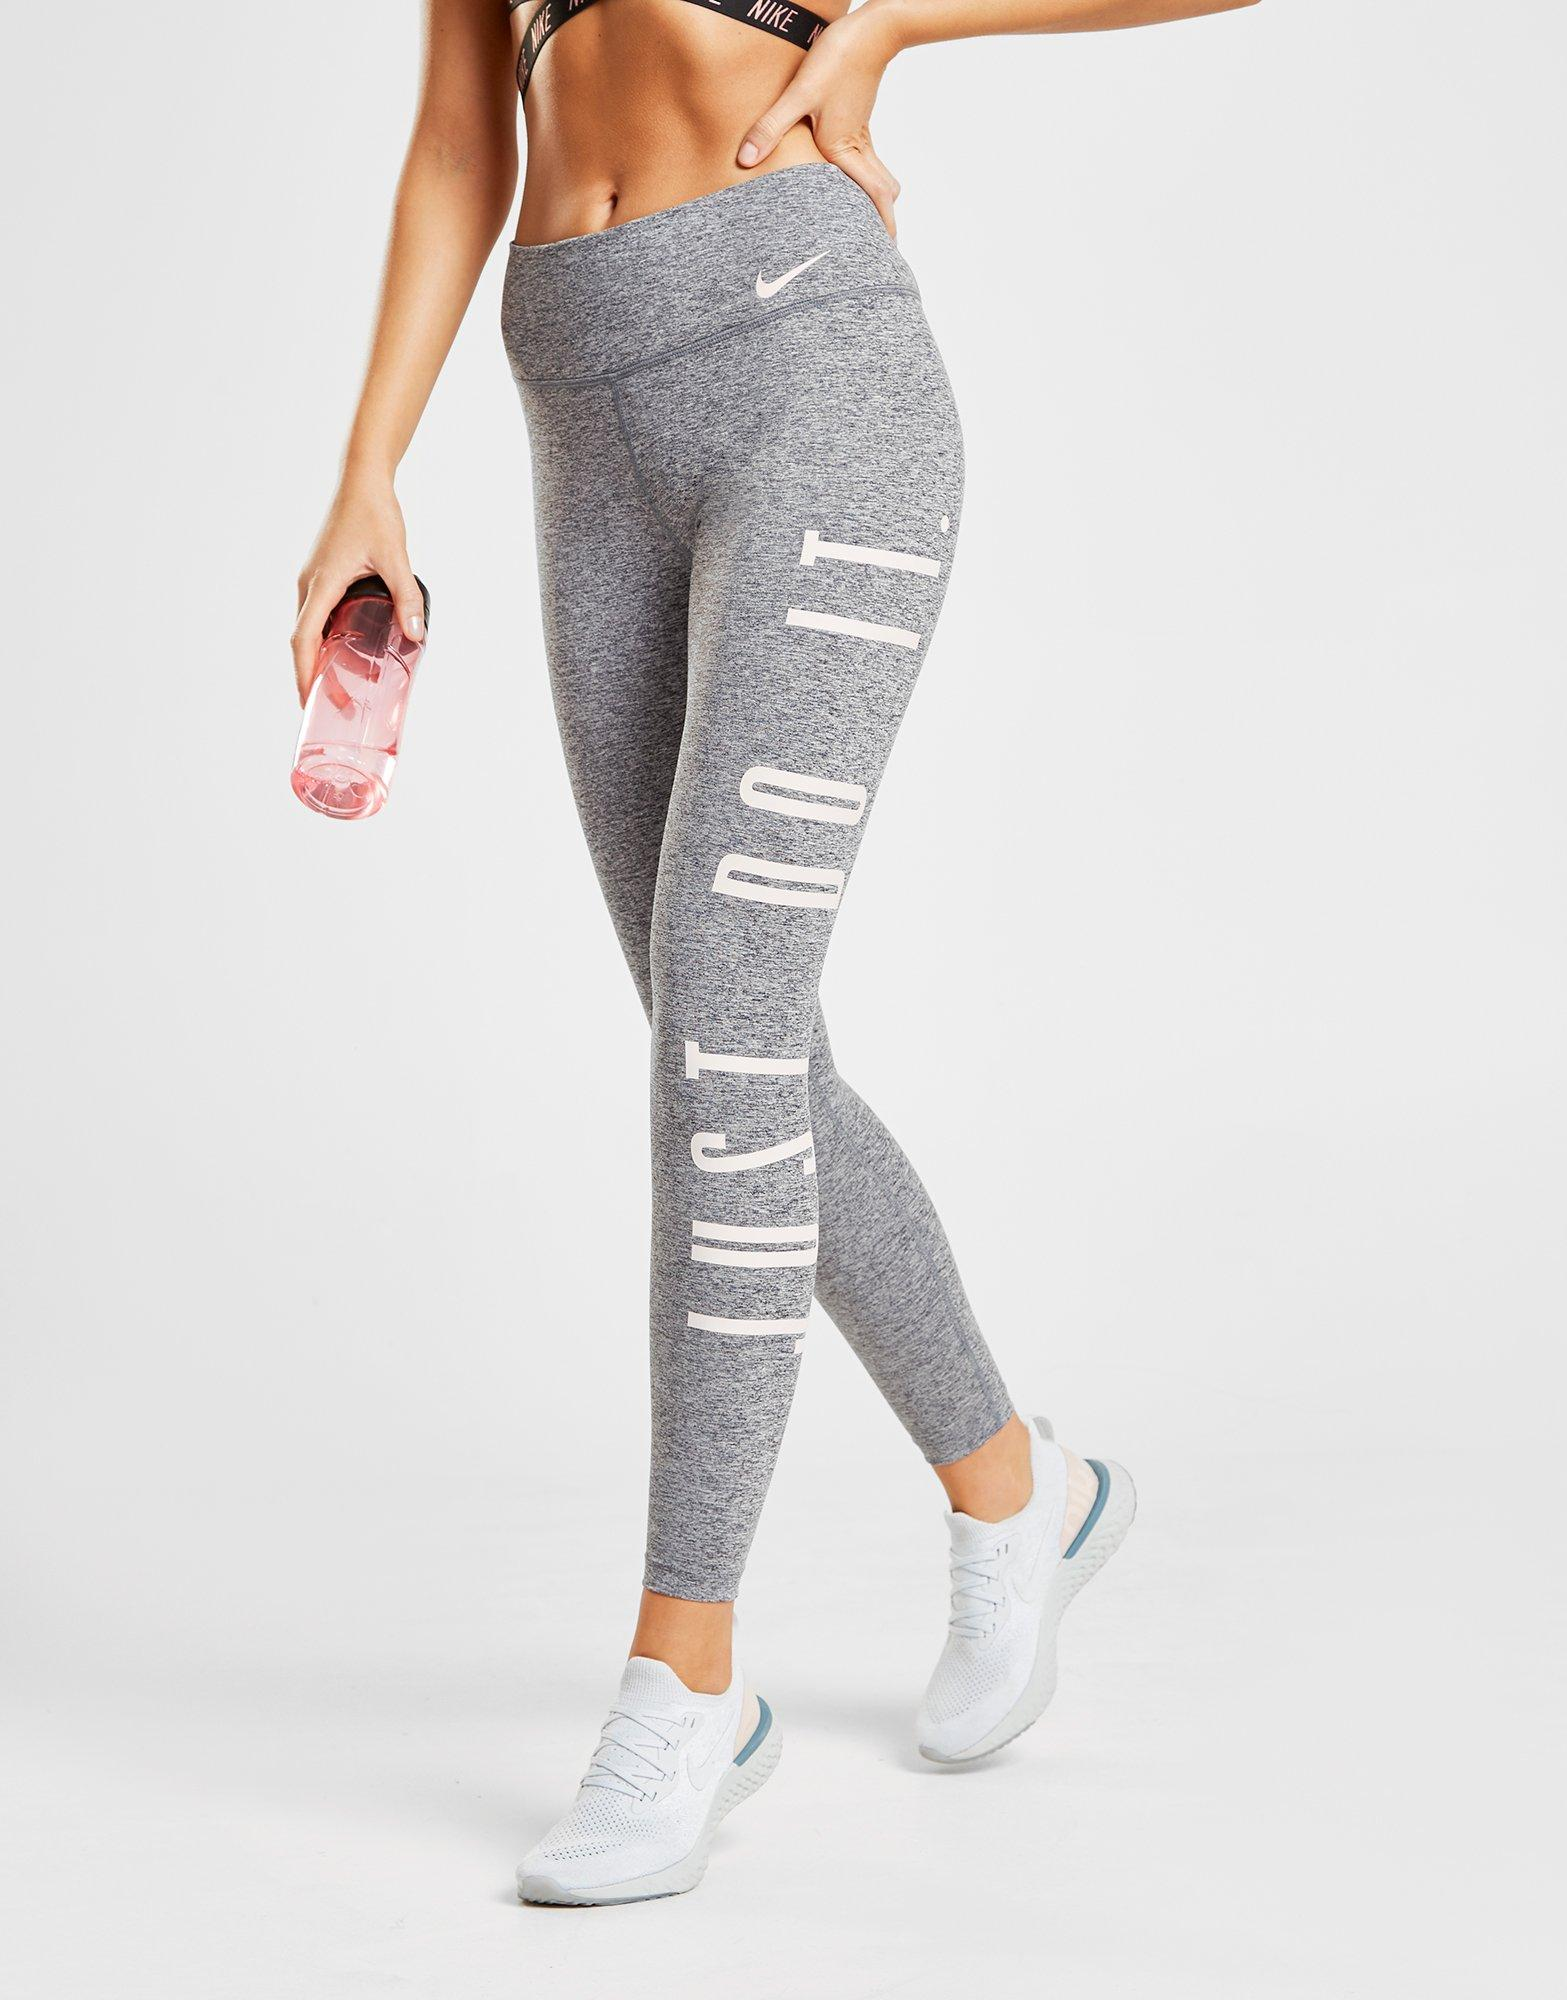 info for 2b3cf a8568 just do it tights